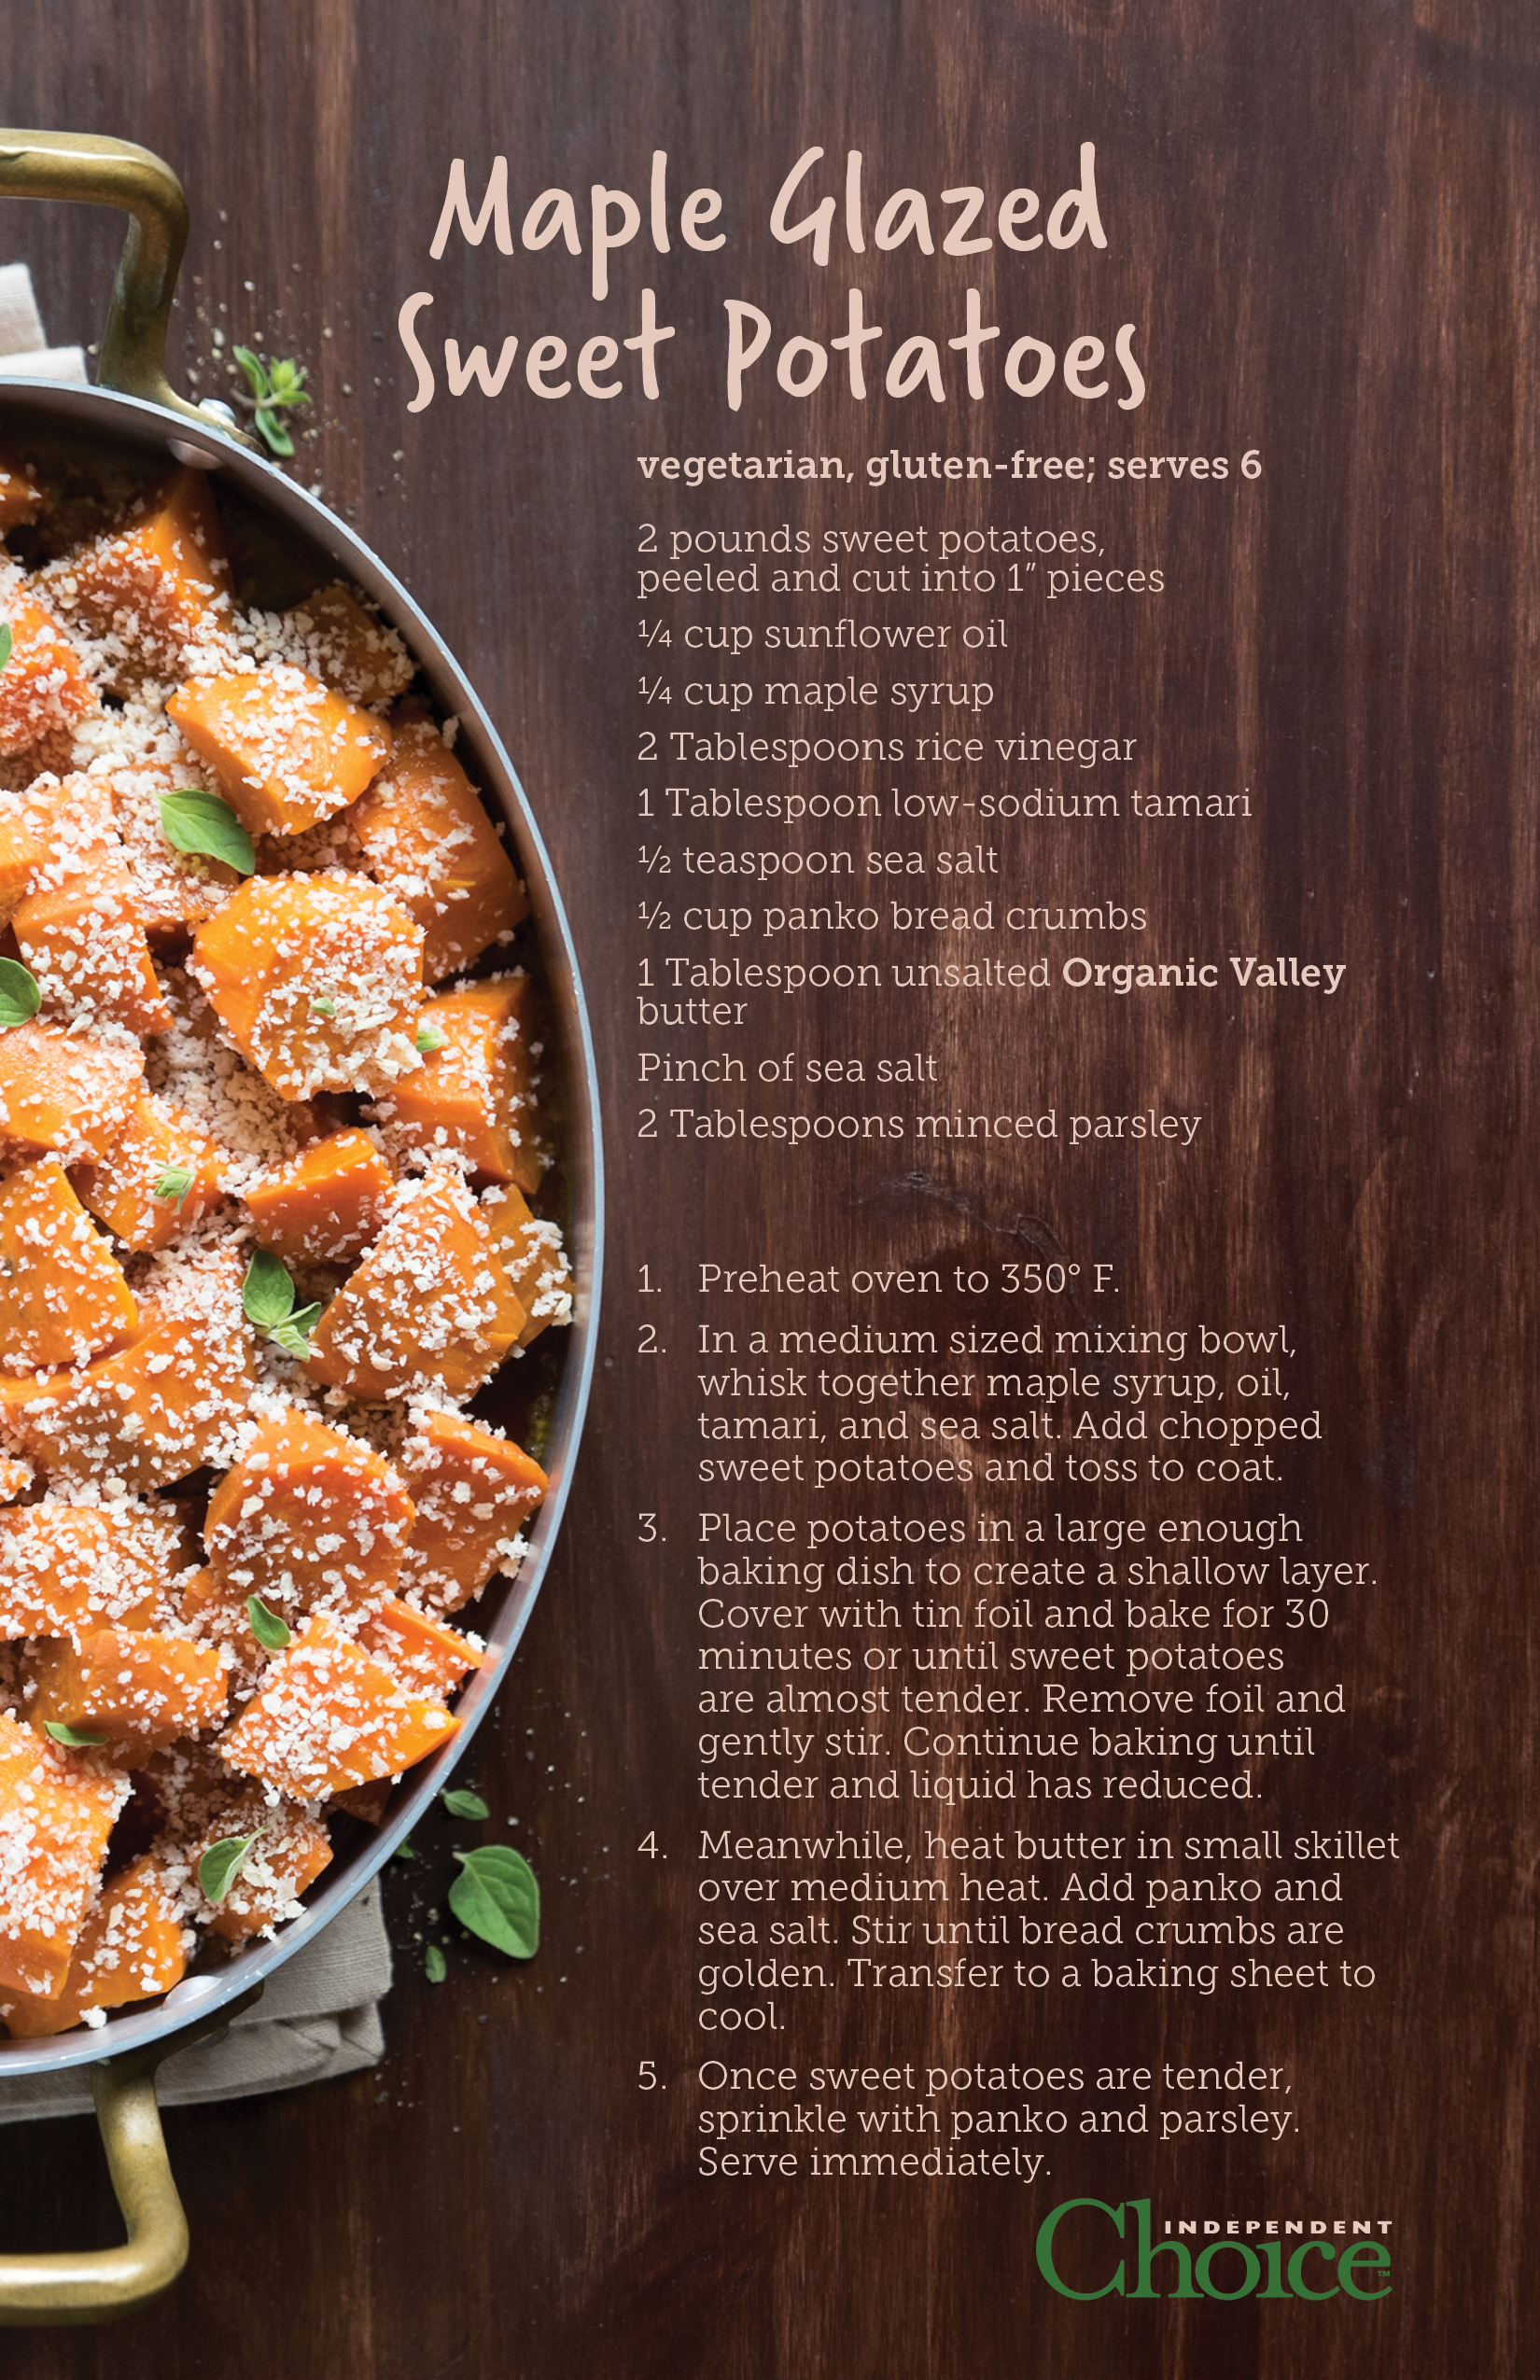 Vegetarian and gluten free.   Make sure your panko bread crumbs are gluten free, or leave them out for your gluten free guests. Easily made vegan by substituting vegan butter for regular dairy butter.